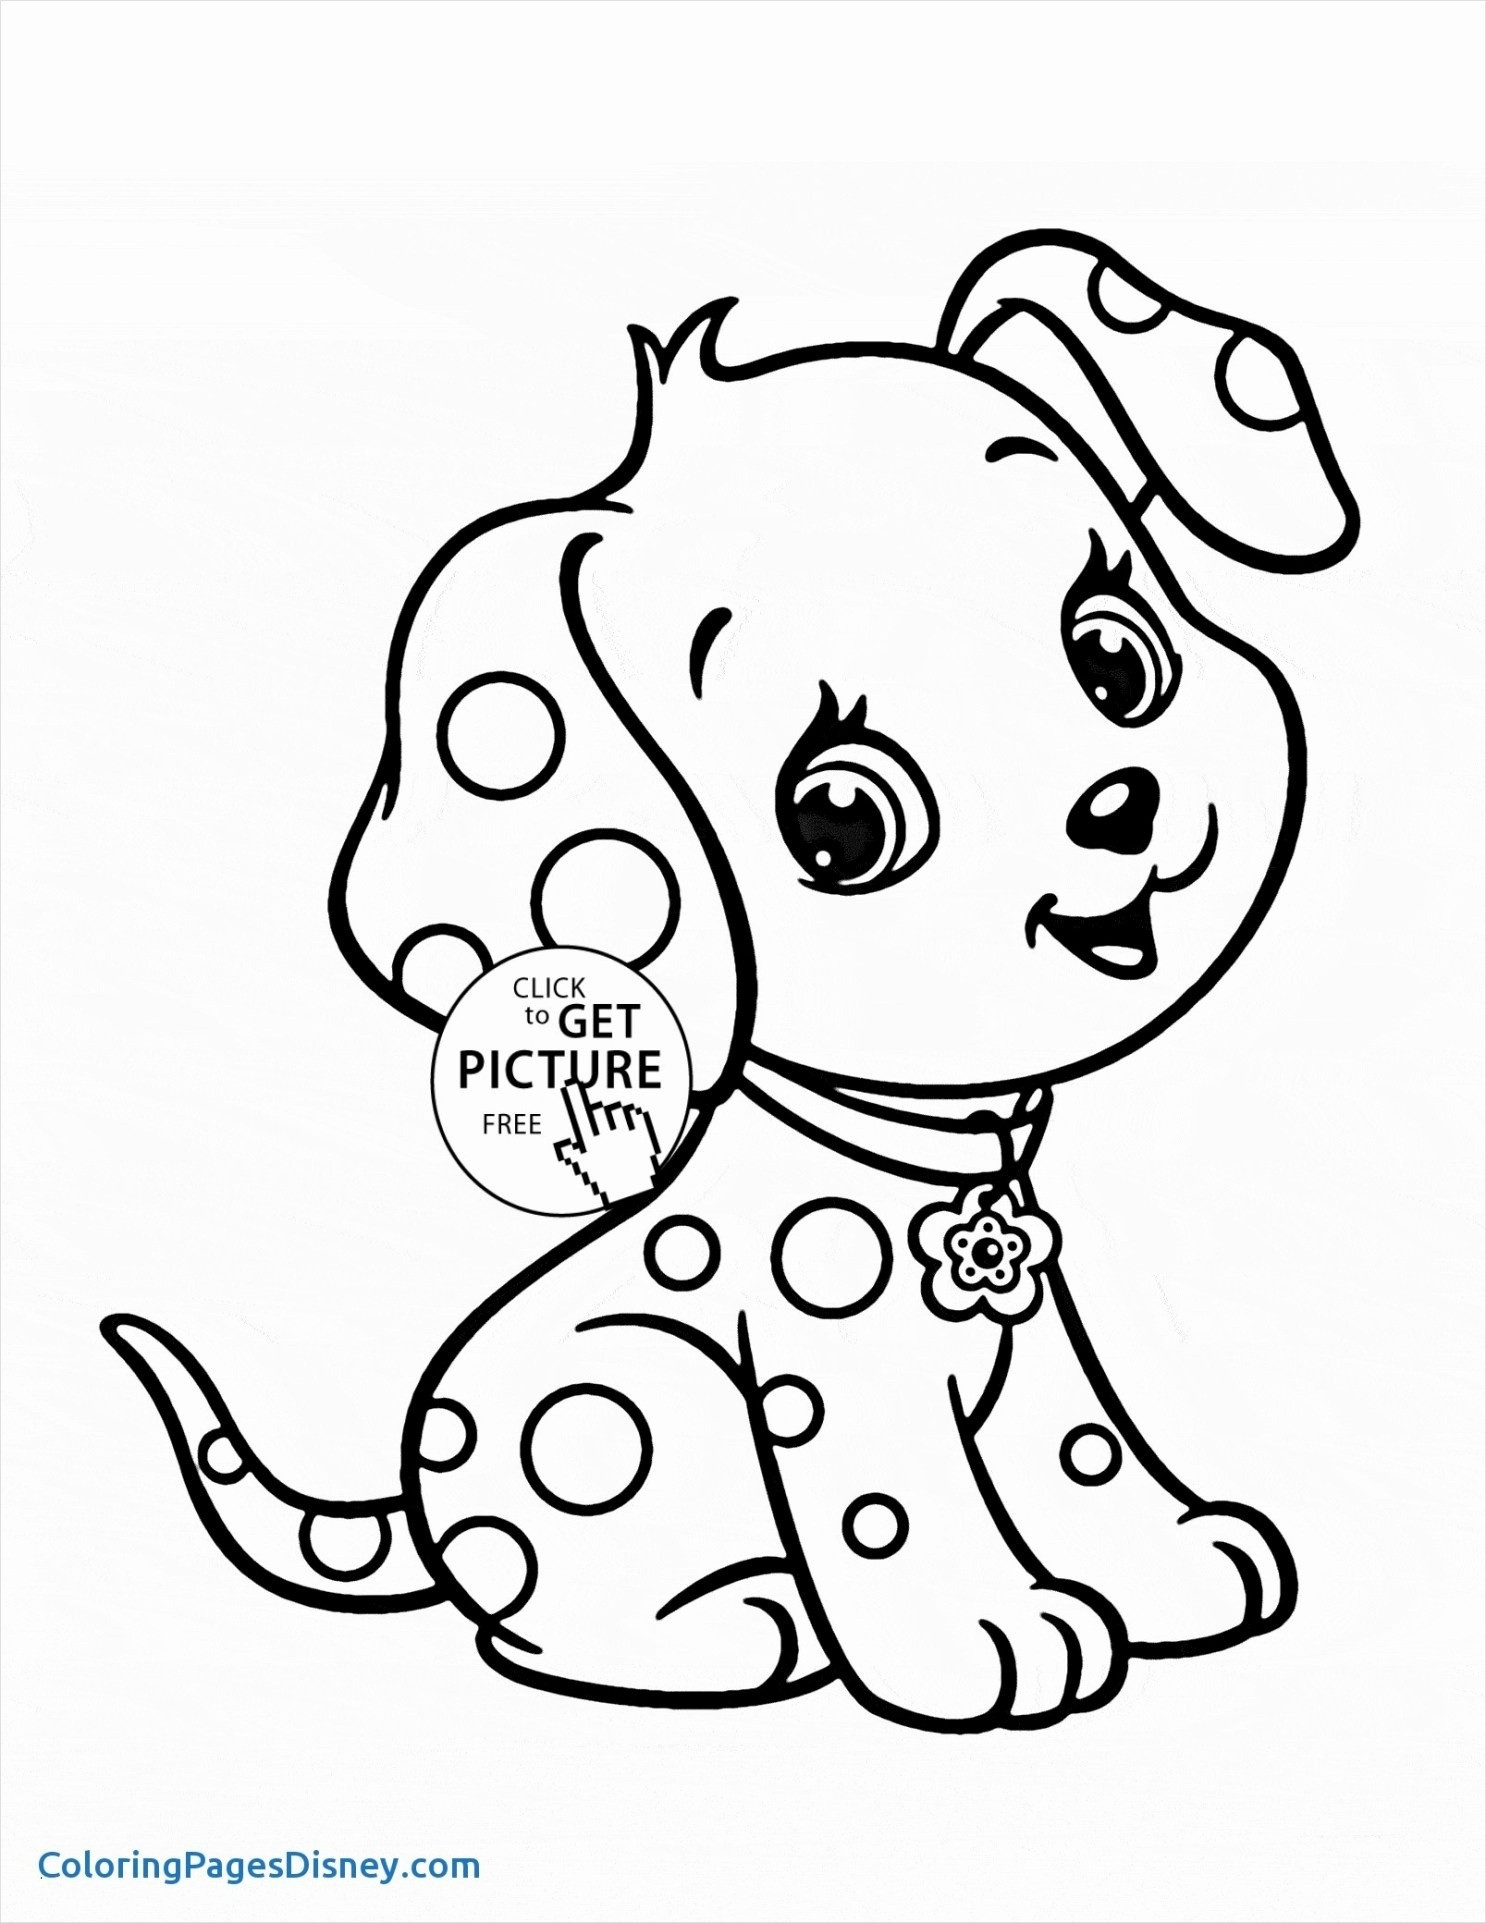 Coloring Page ~ Coloring Pages Free Printable Books Pdf Stunning - Free Printable Coloring Books Pdf